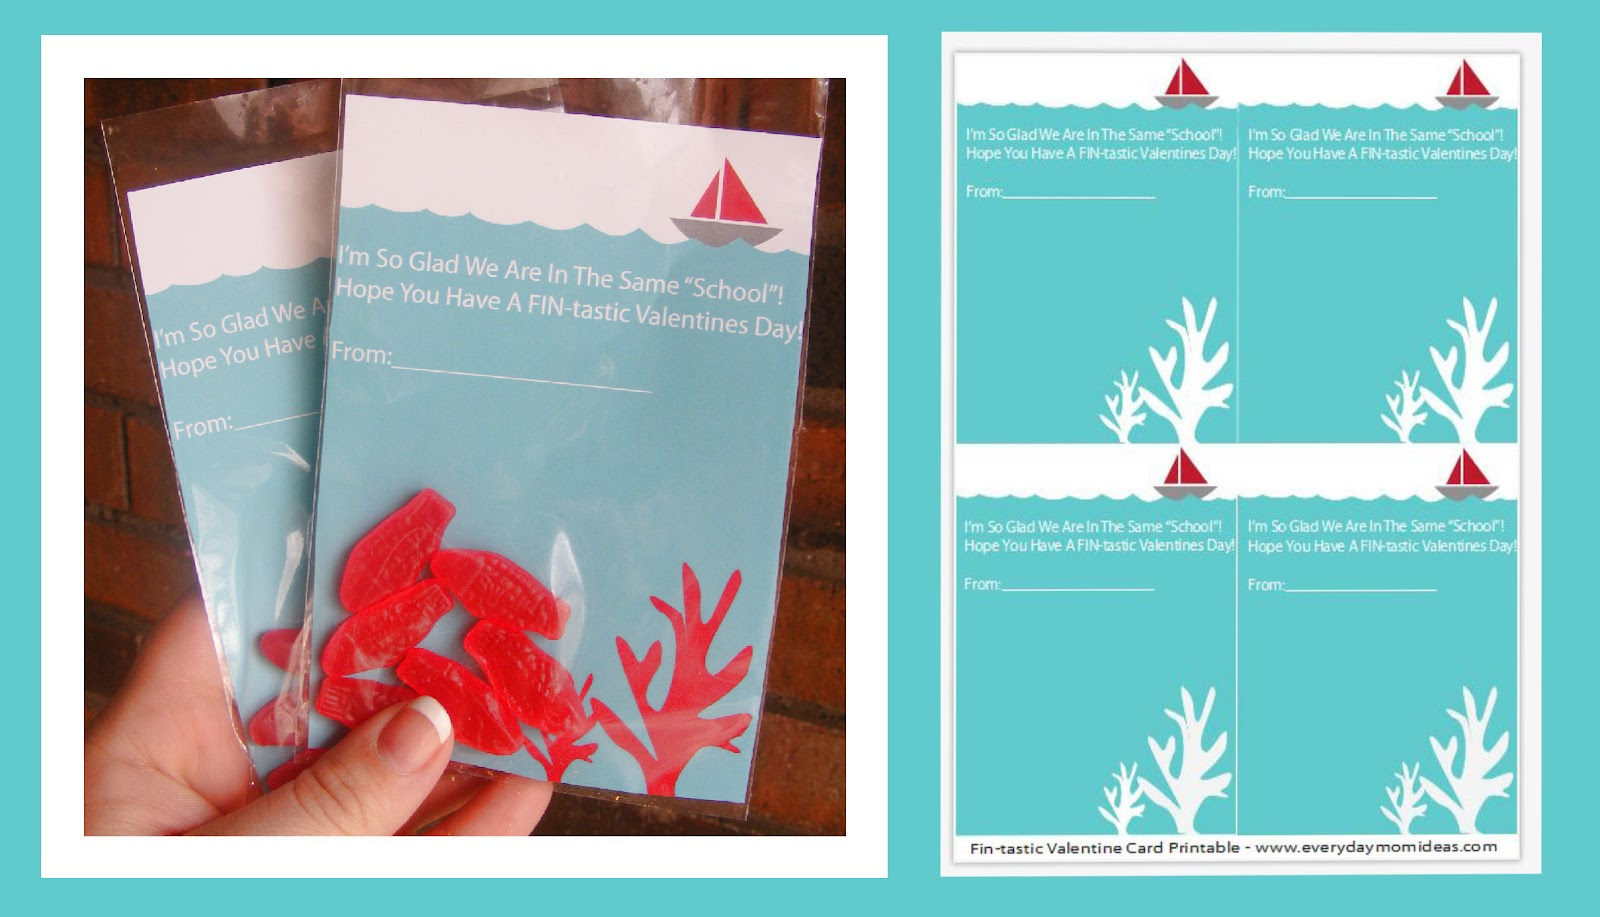 Fin Tastic Valentine Card Printable Free Everyday Mom Ideas